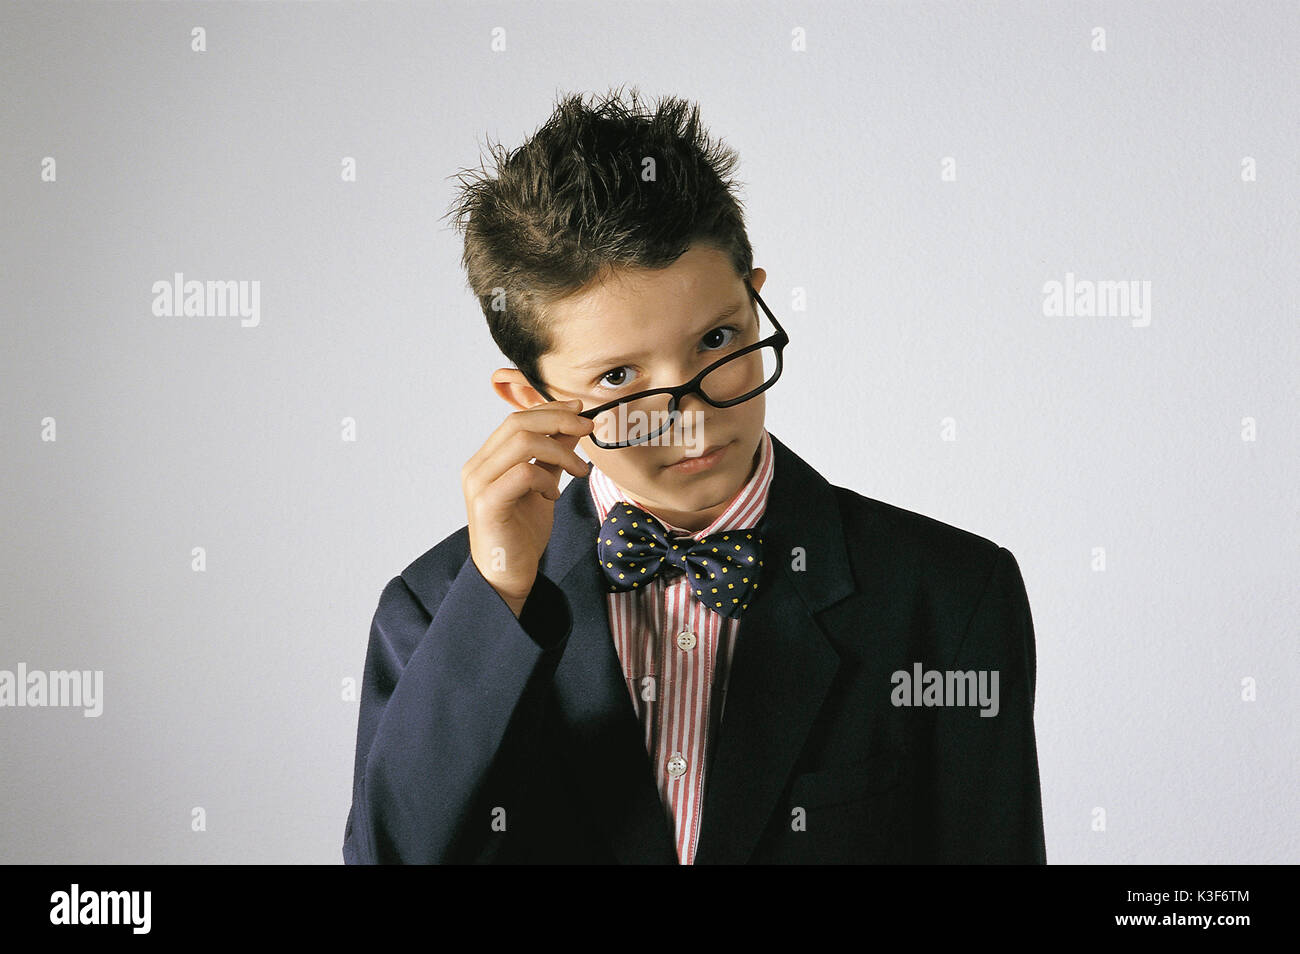 Small boy with bow tie grabs himself to the frame - Stock Image